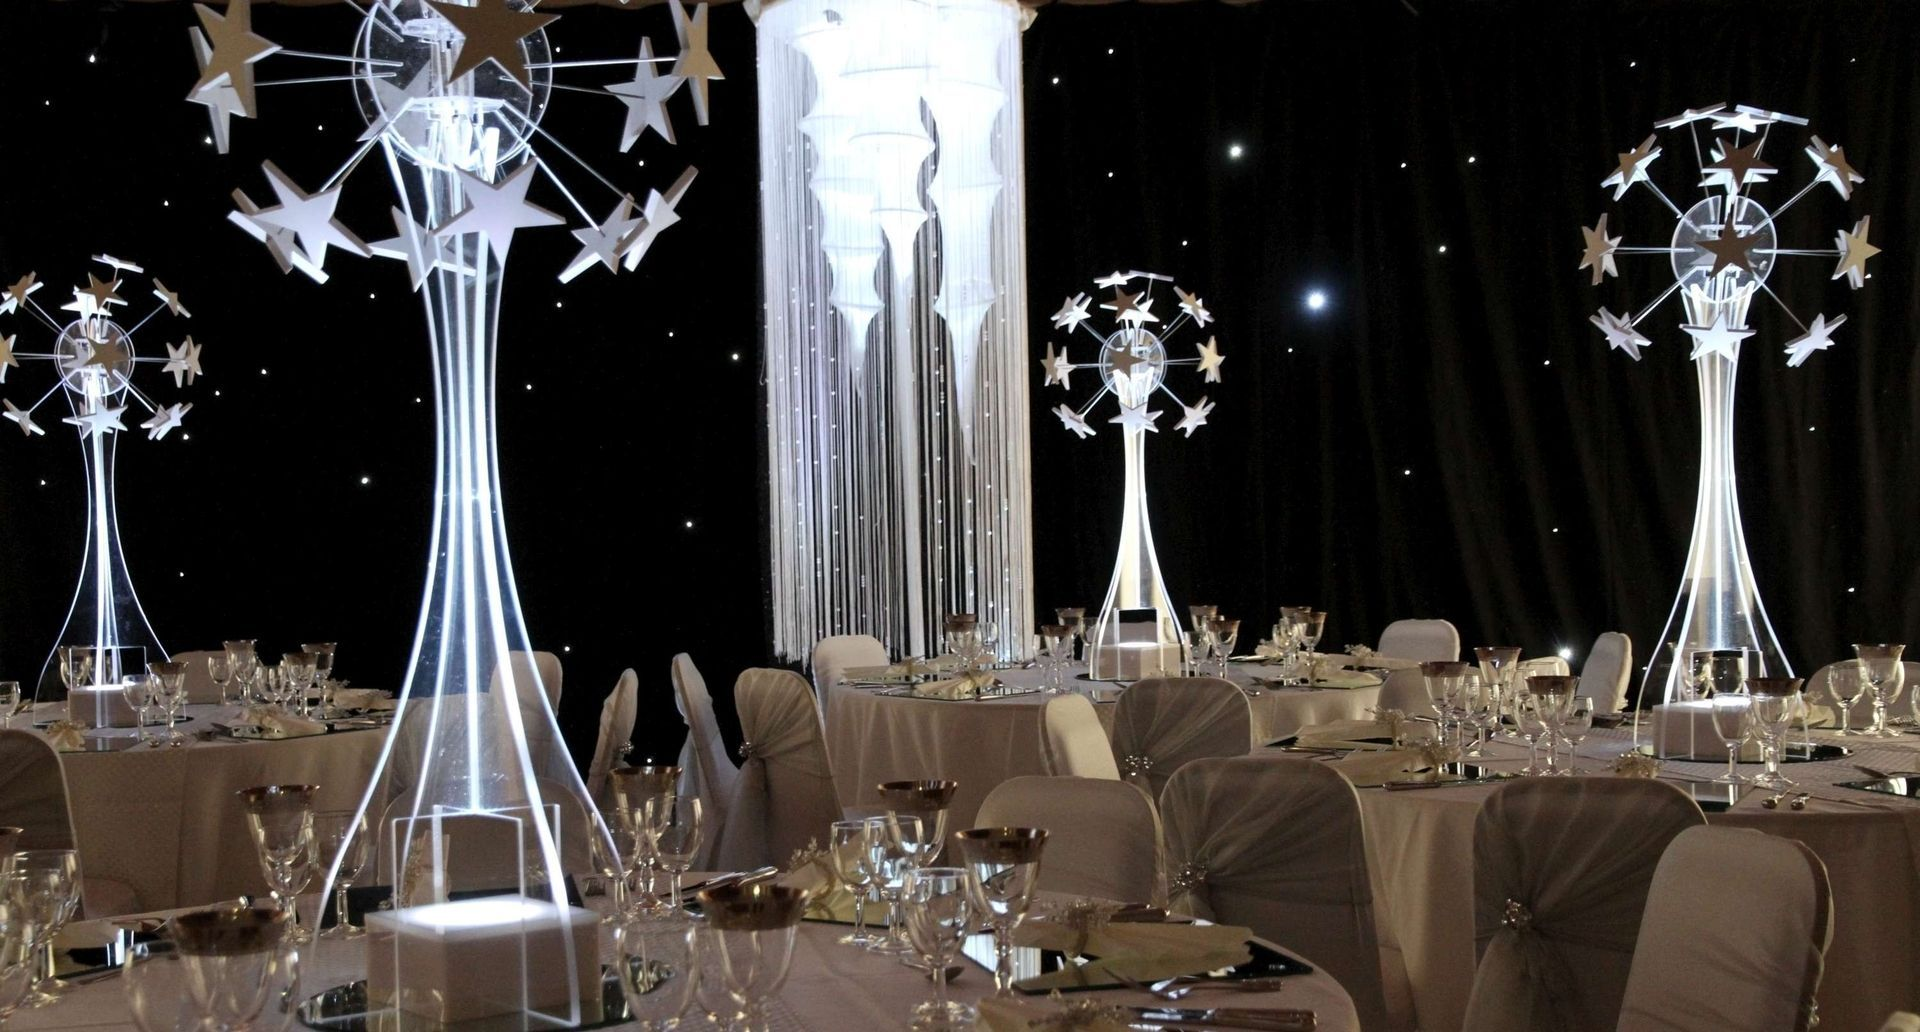 Star Globe Table Centrepieces, That Can Be Lit In A Colour Of Your Choice